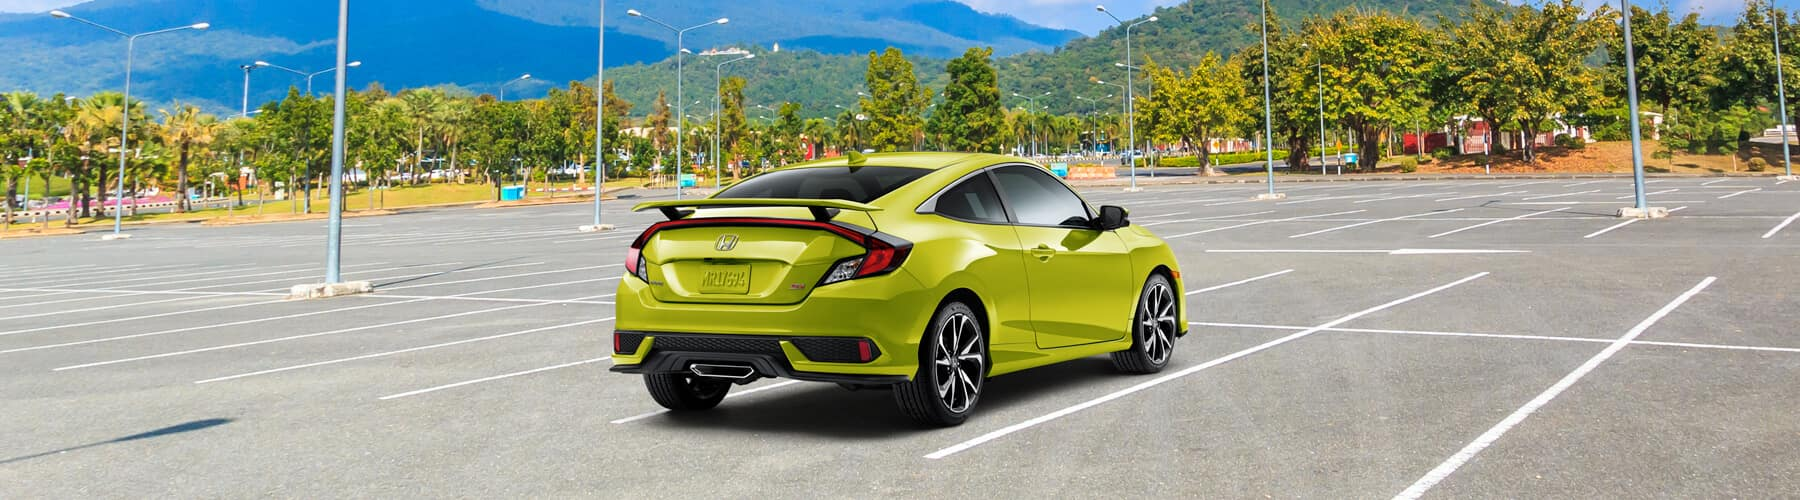 2019 Honda Civic Si Coupe Slider